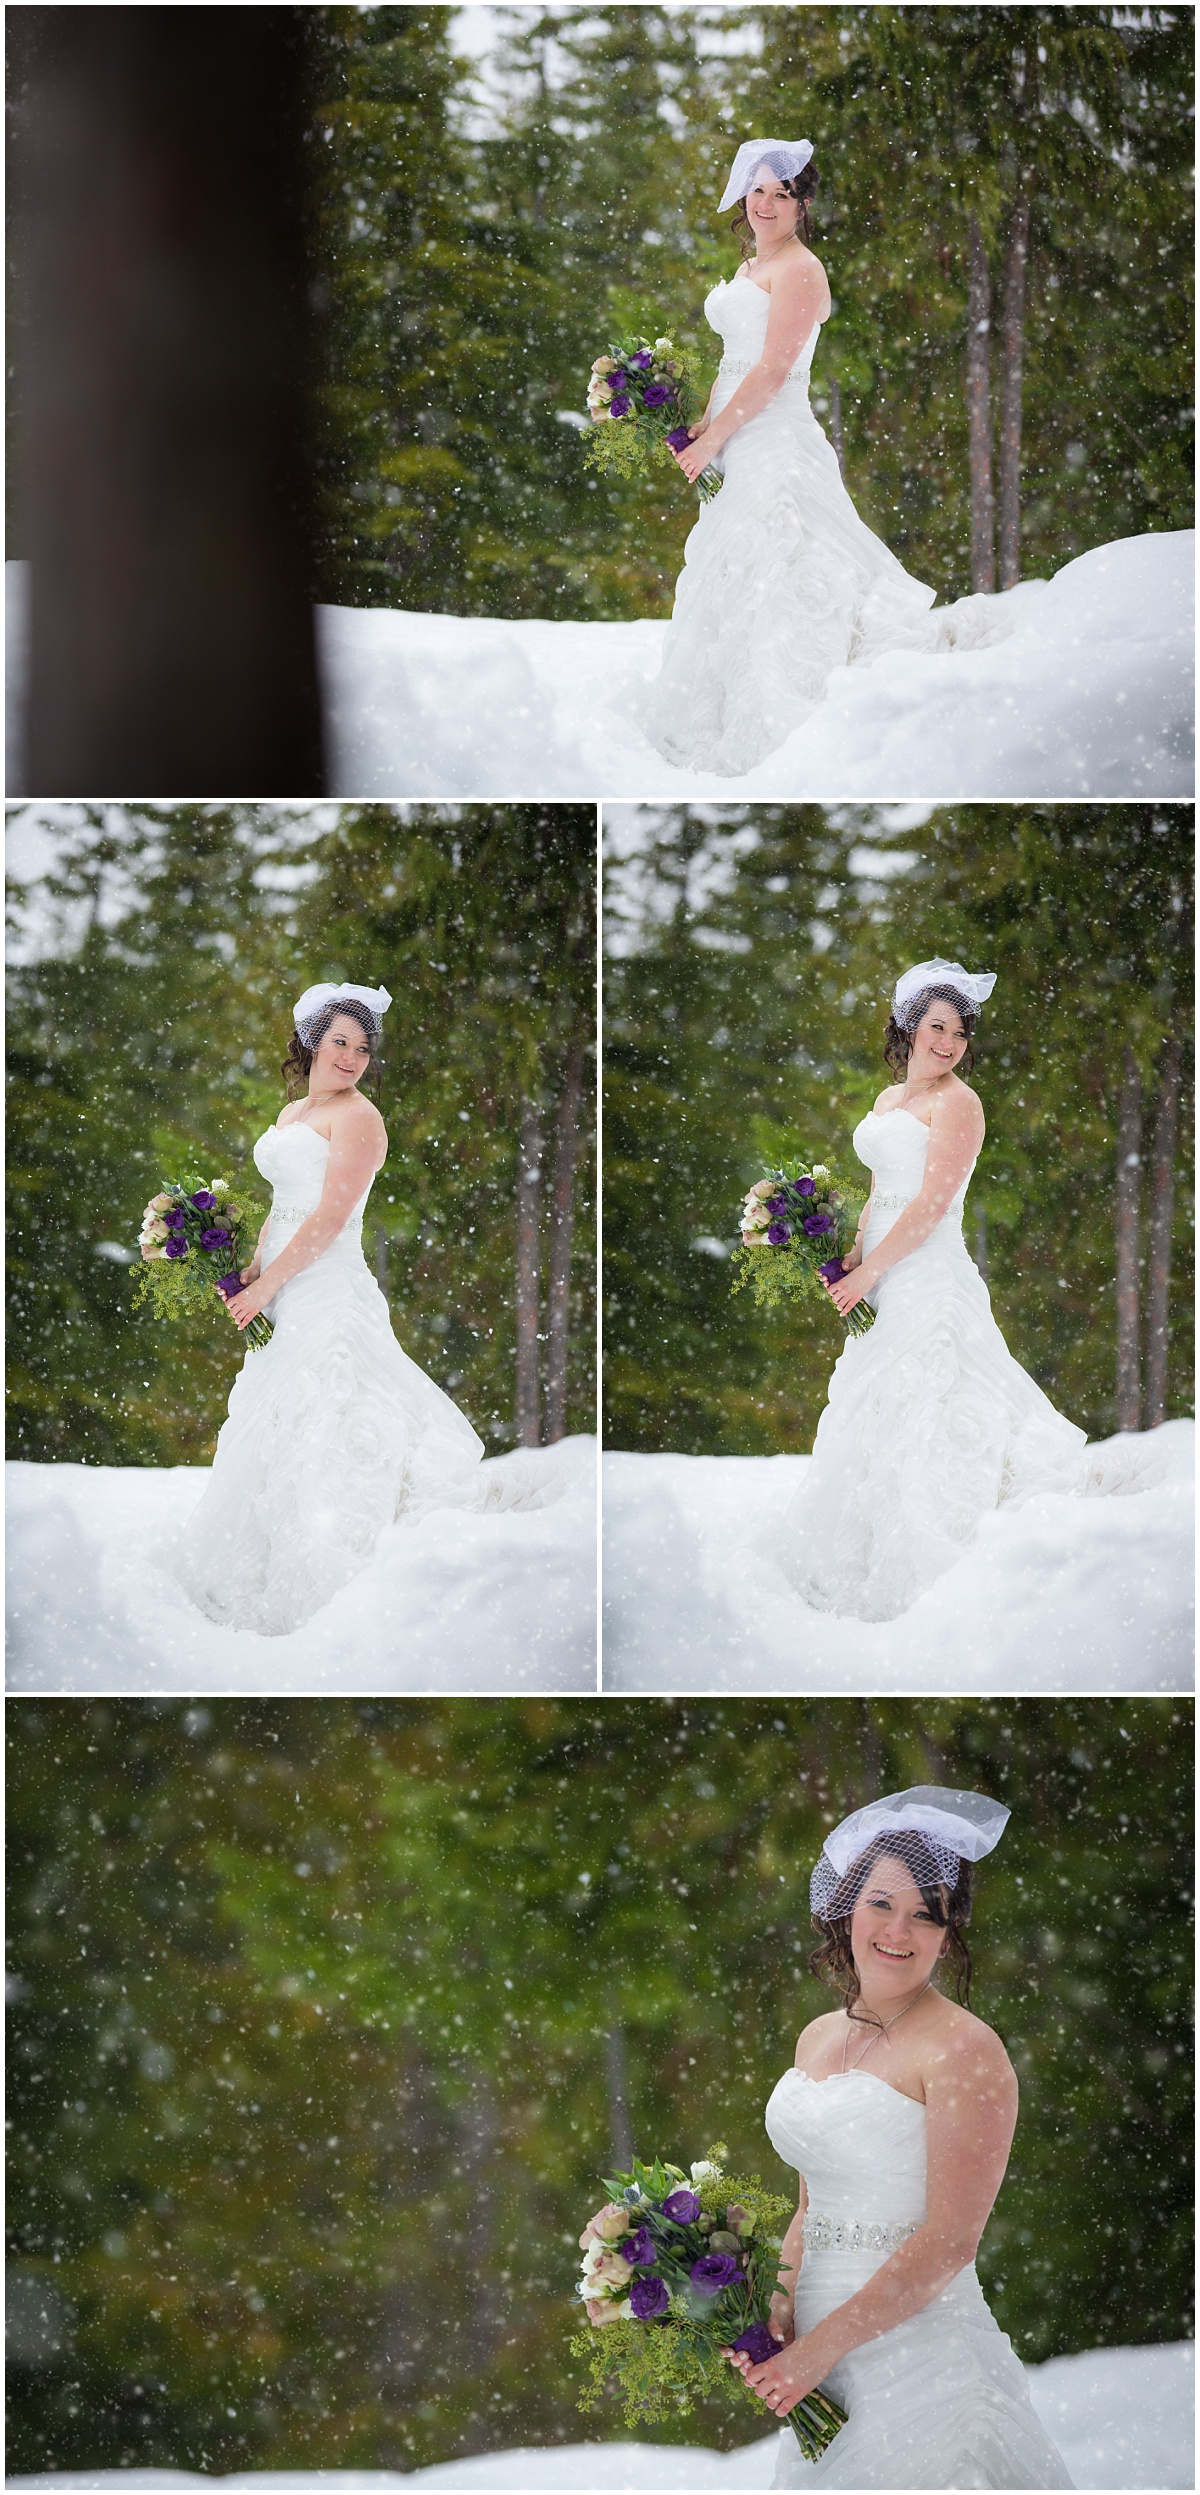 Amazing Day Photography - Squamish Wedding - Howe Sound Inn Wedding - Sea to Sky Gondola Wedding - Squamish Wedding Photographer - Winter Wedding - Snowy Wedding (17).jpg